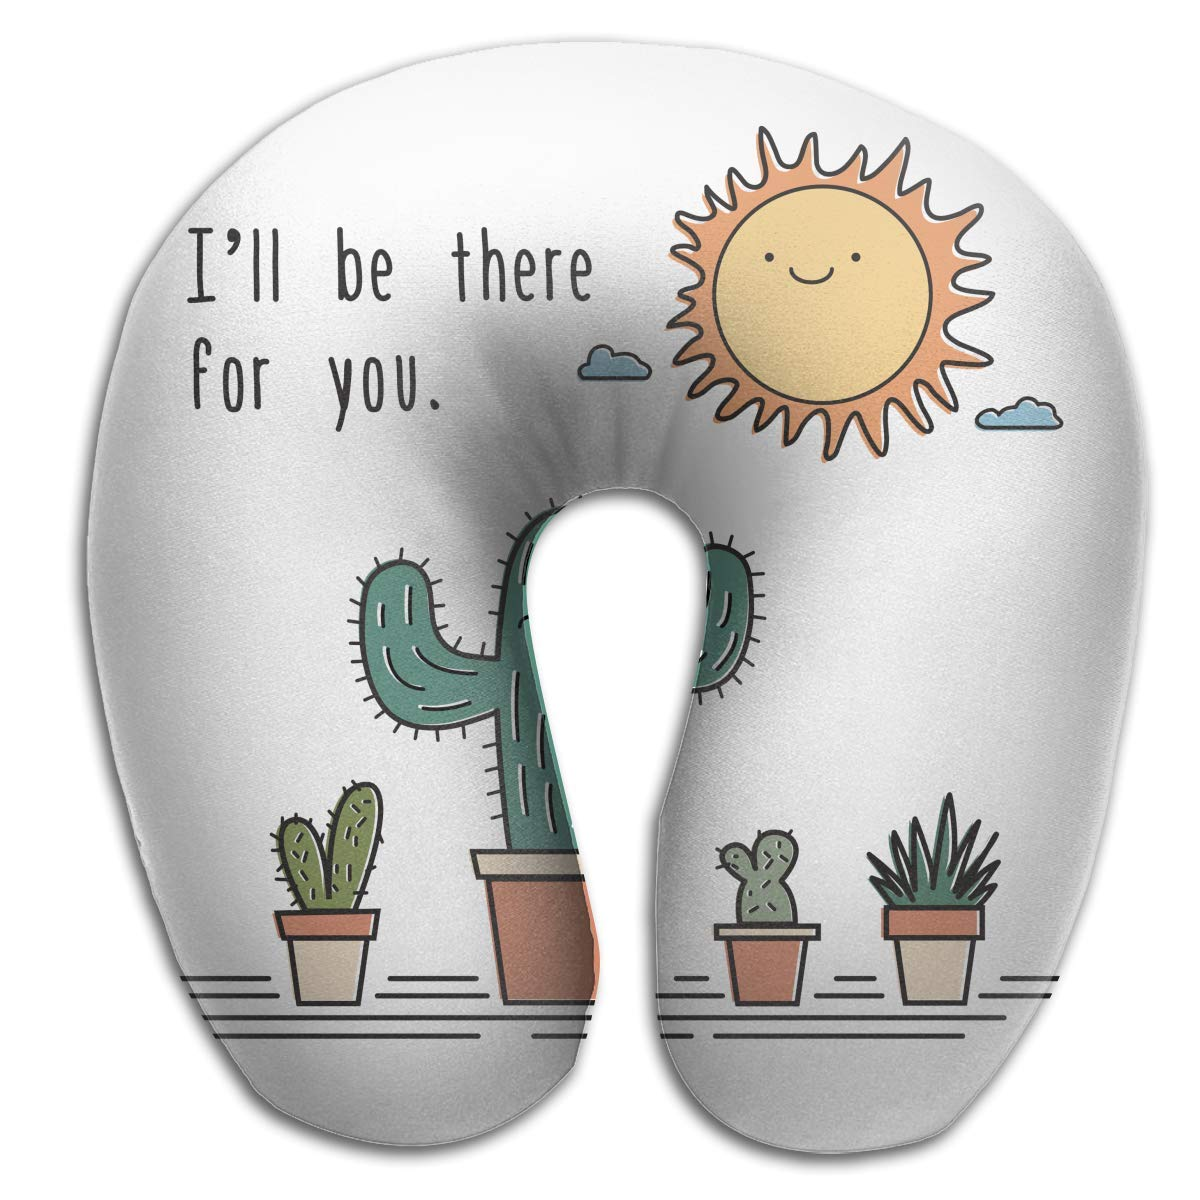 U-Shaped Neck Pillow I\'ll Be There for You Pillows Soft Portable for Travel Reading Sleeping